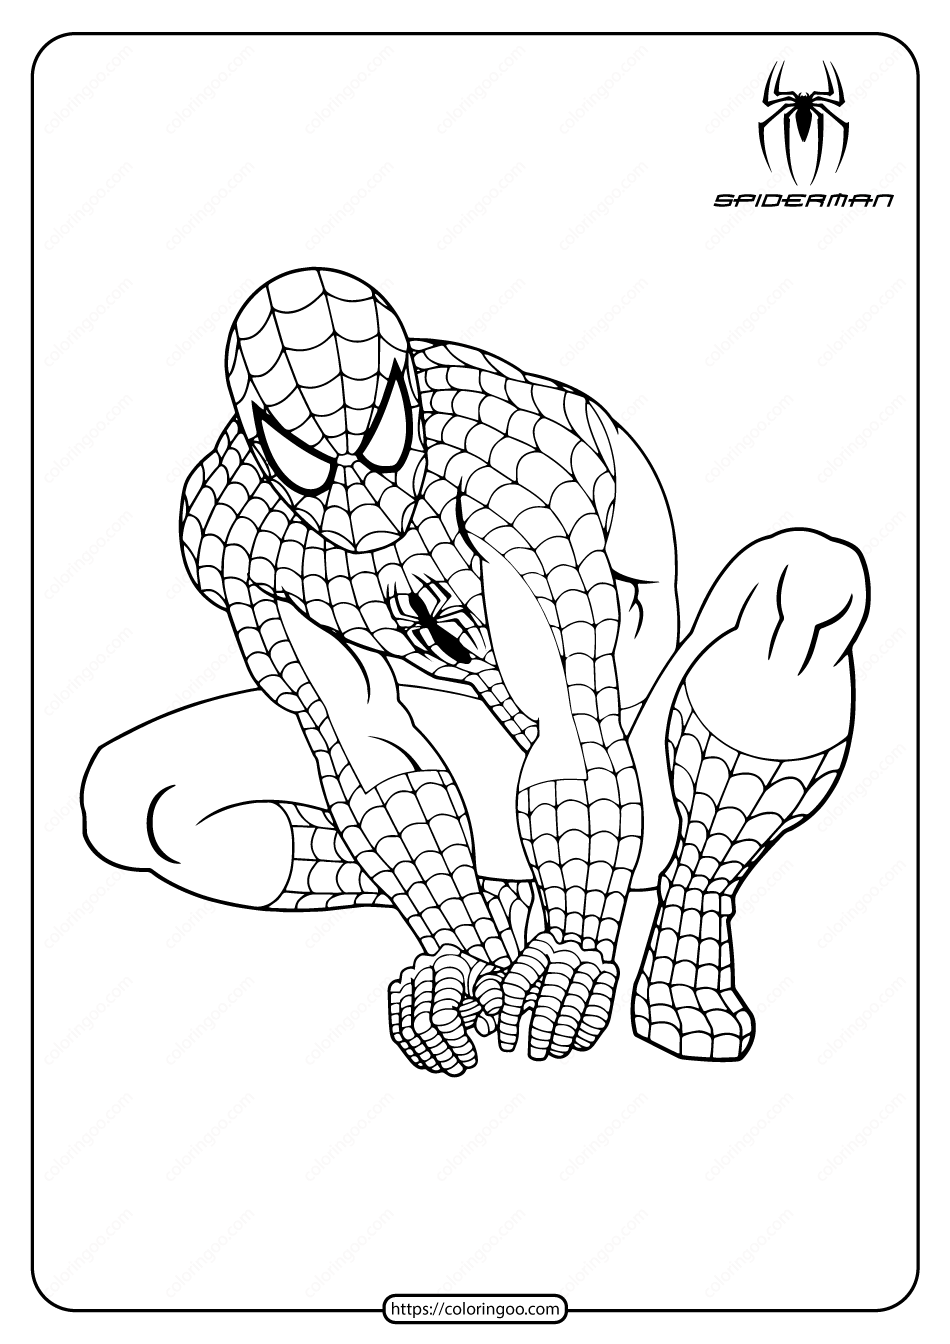 Marvel Hero Spiderman Pdf Coloring Pages High Quality Free Printable Pdf Coloring Drawing Painting Pages An In 2021 Spiderman Coloring Hero Spiderman Coloring Pages